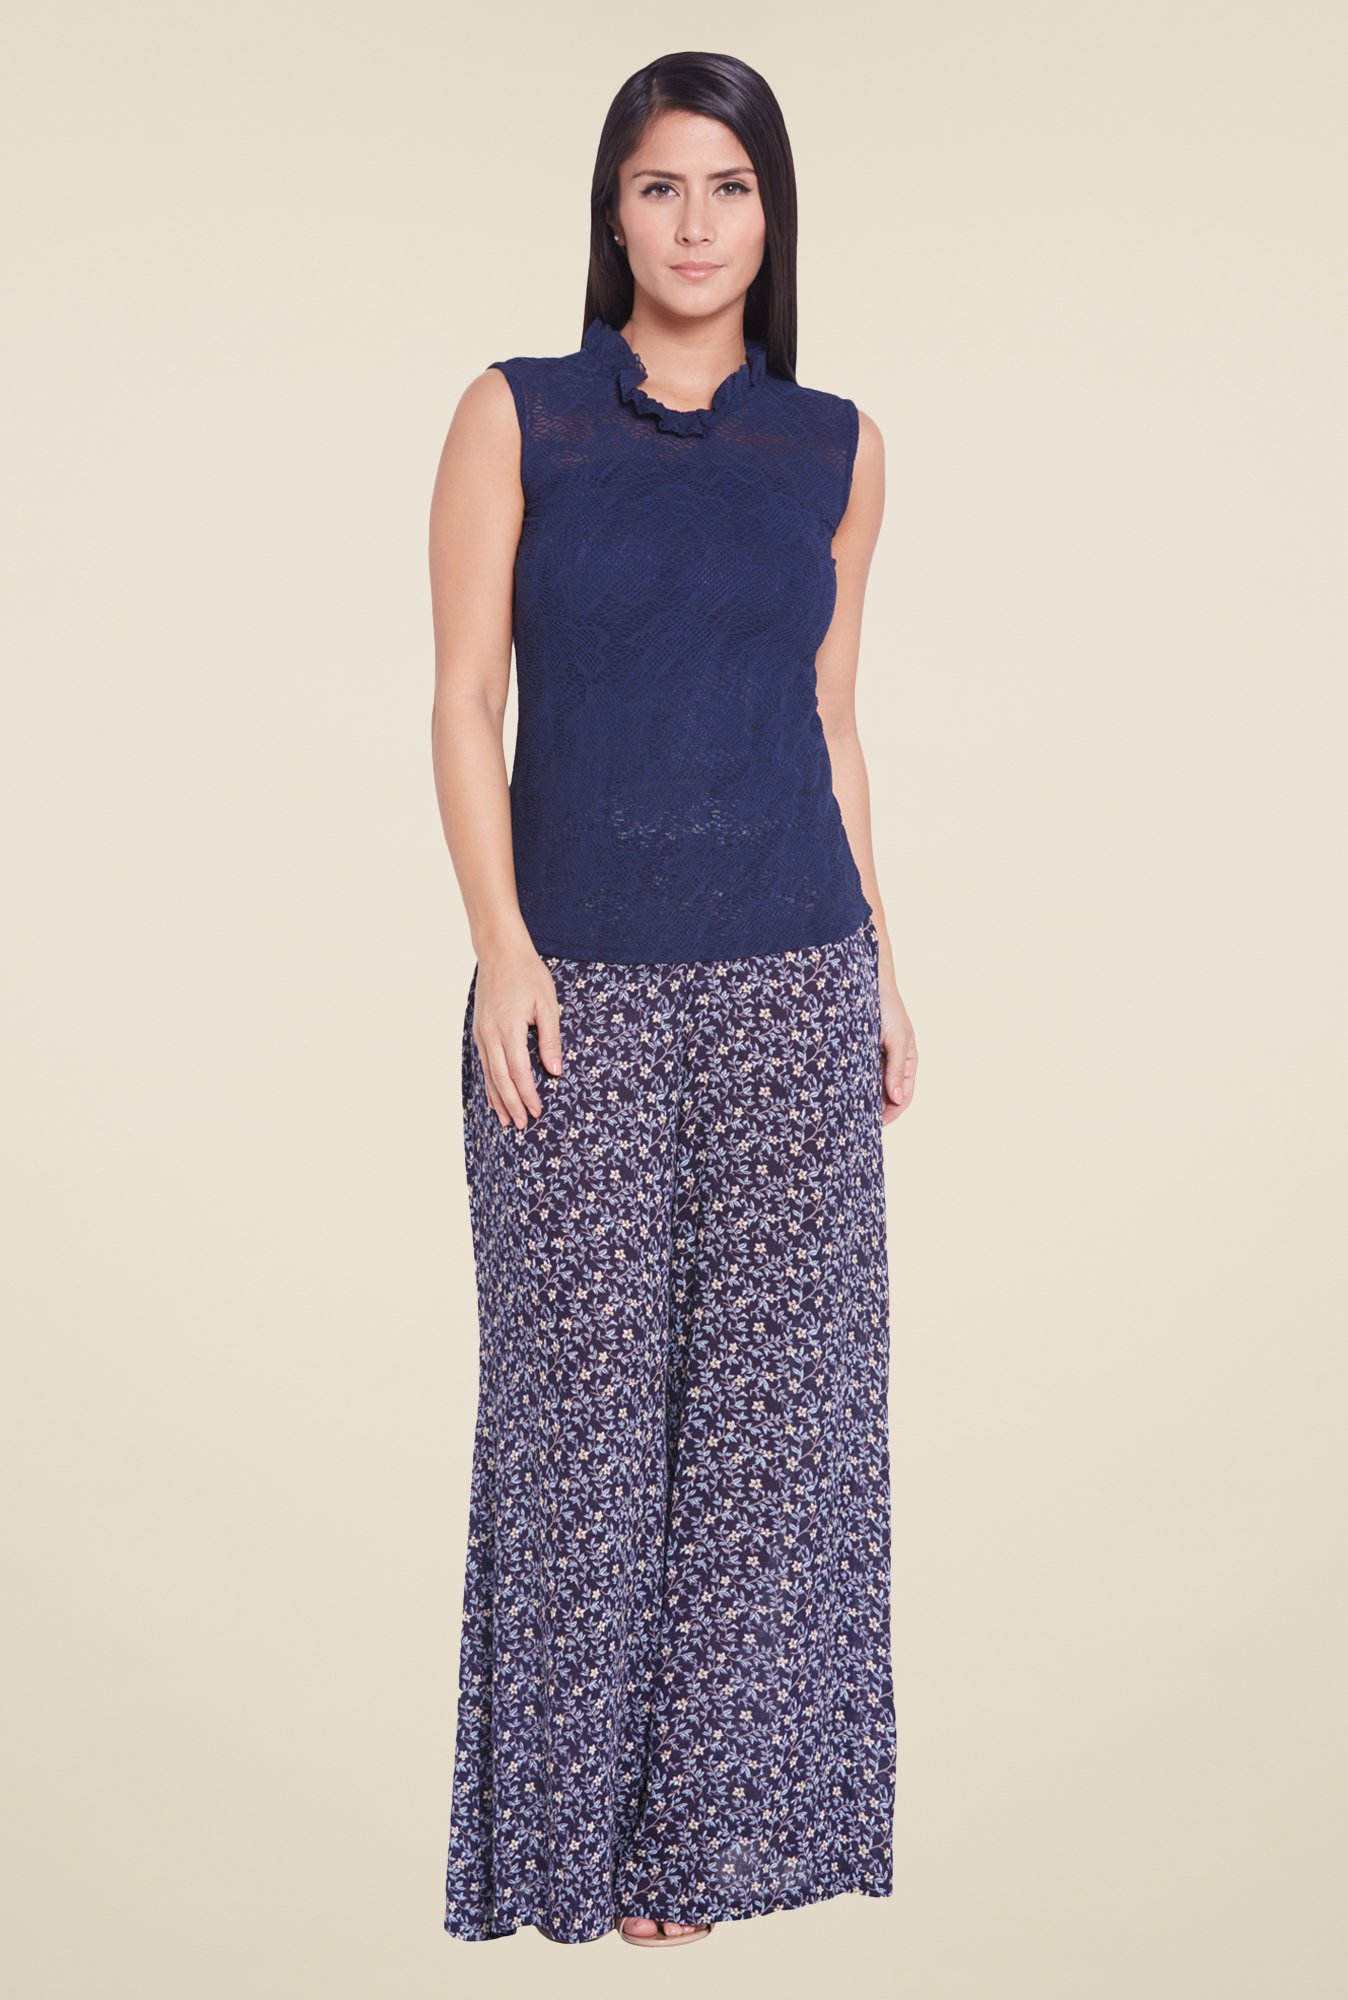 Globus Indigo Sleeveless Top